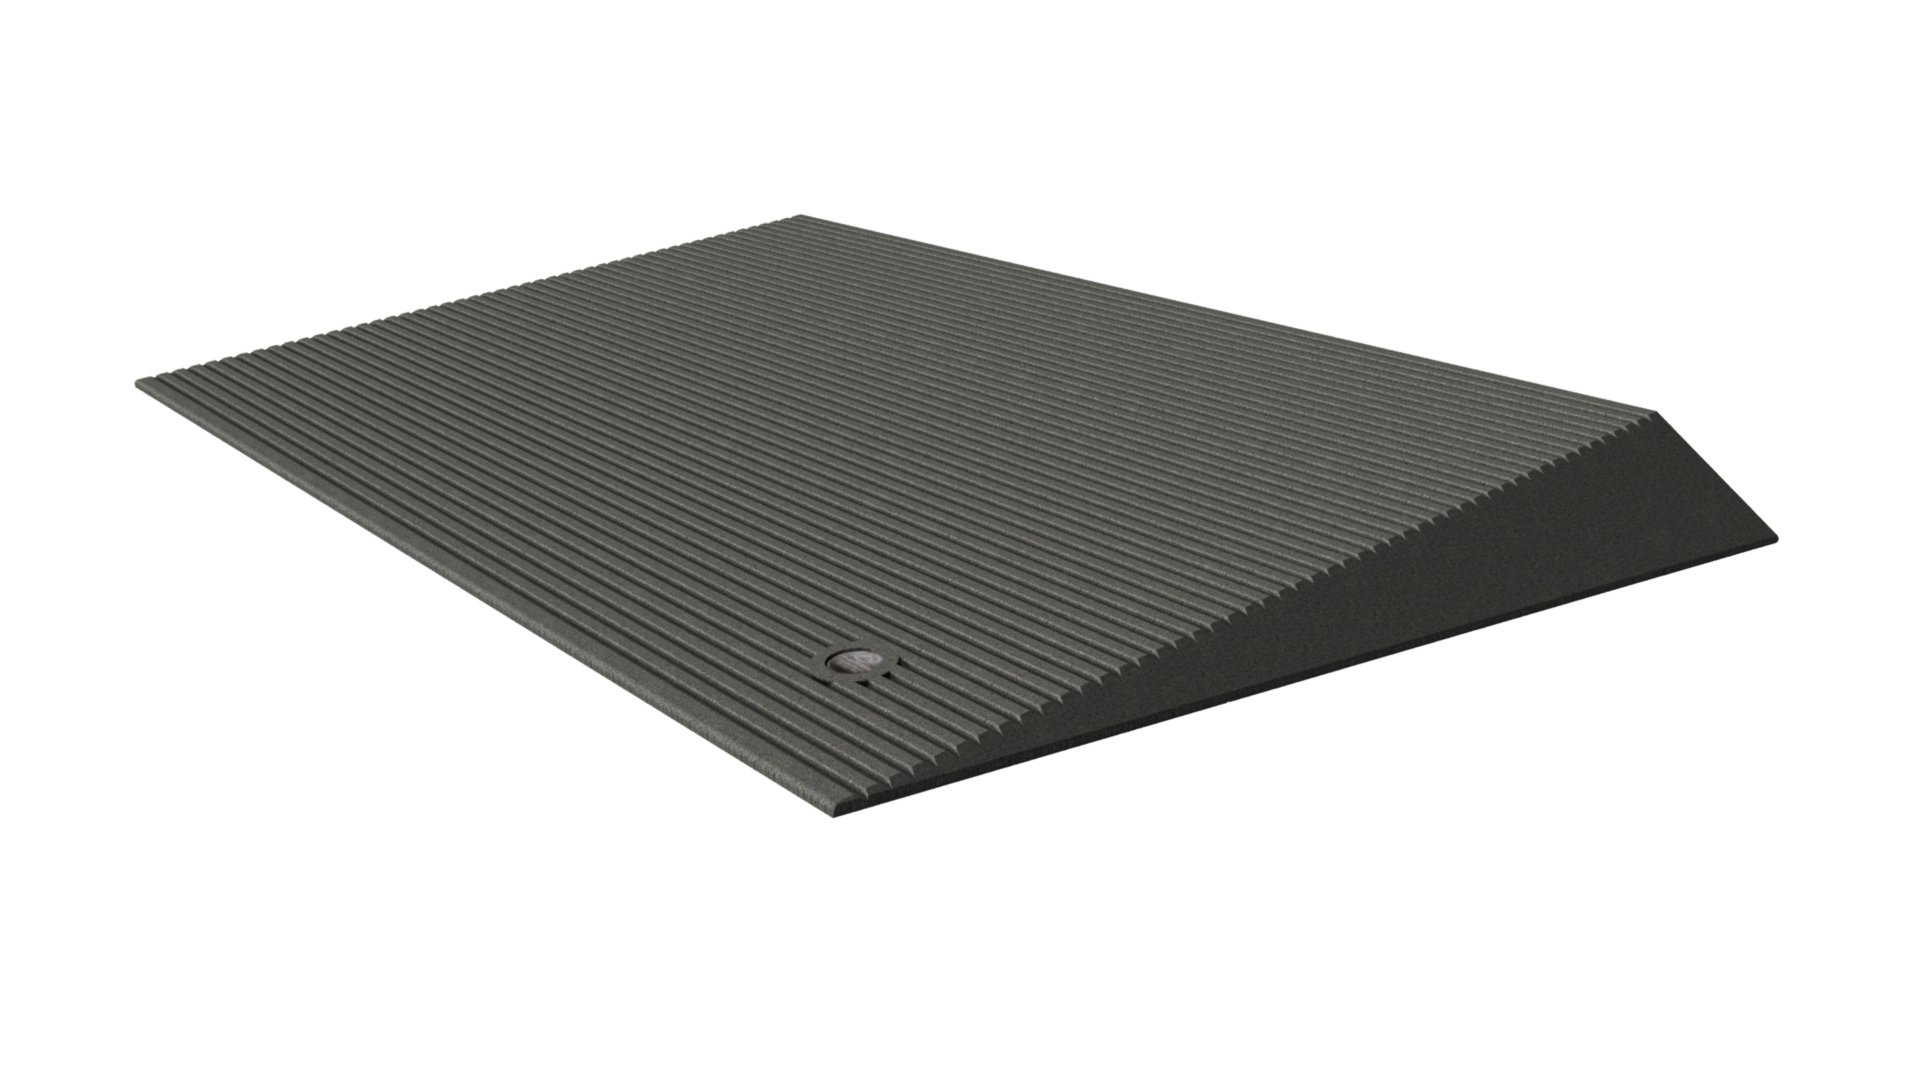 EZ-ACCESS Transitions Angled Entry Mat, Storm Grey, 31 Pound